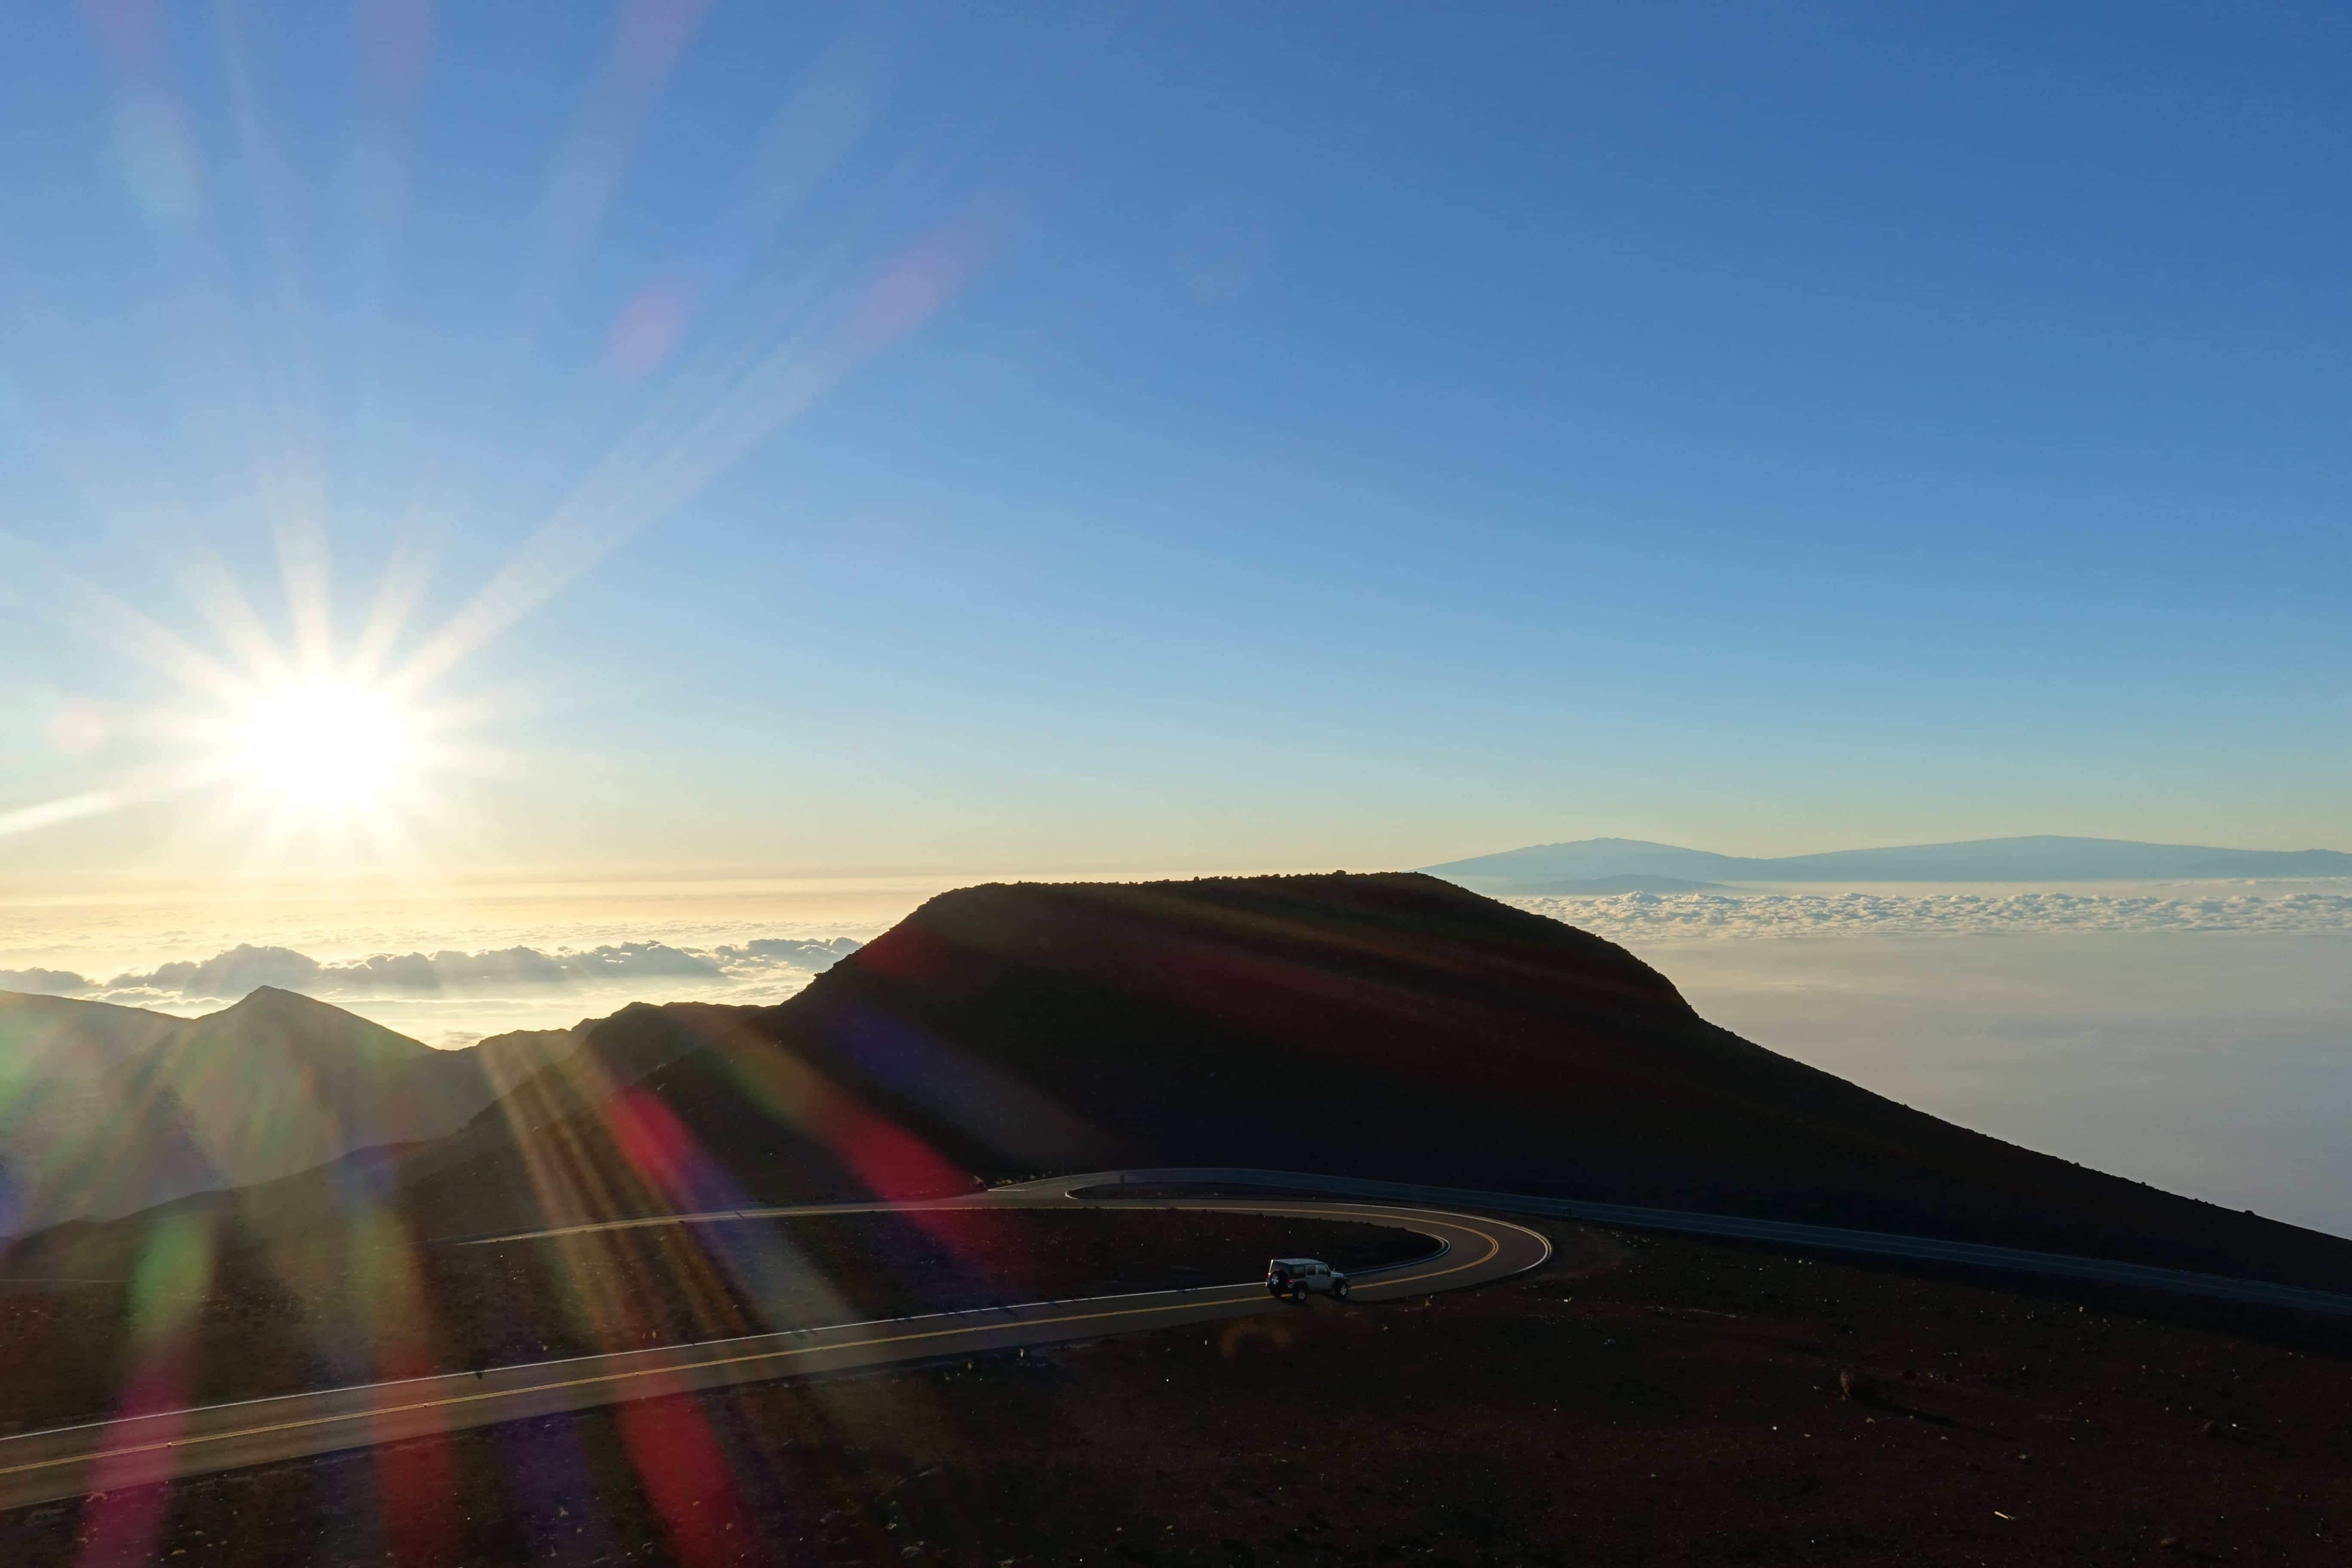 """If you research Maui, you'll see that sunrise at Haleakala is at the top of people's """"must do"""" lists -- for good reason! Seriously, DO NOT MISS THIS!! Read more at www.thefivefoottraveler.com"""